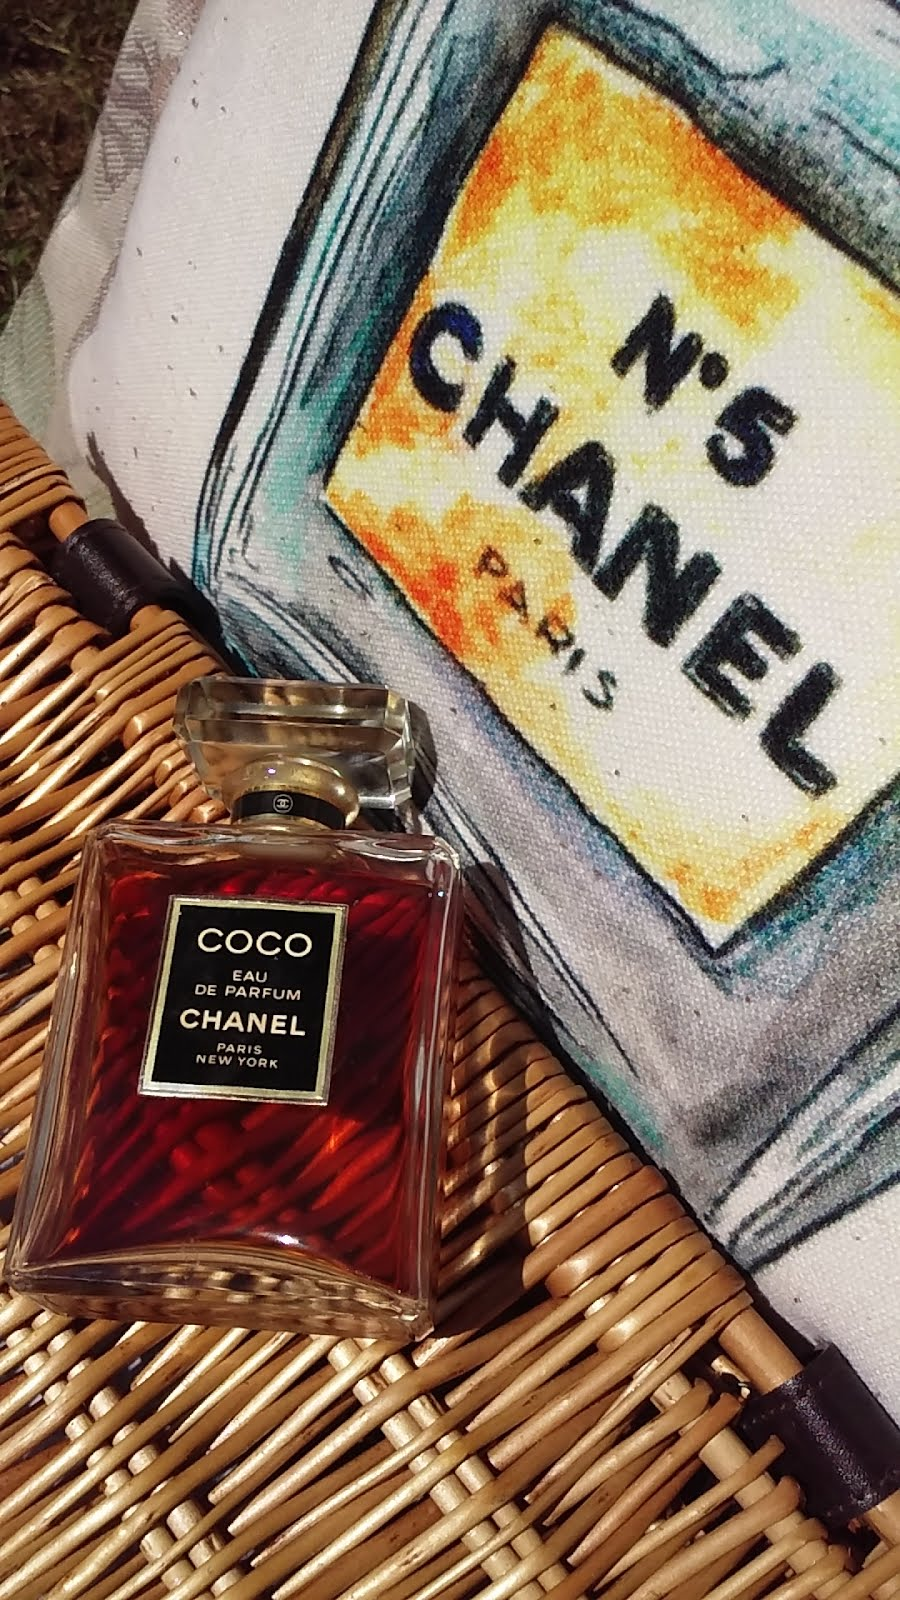 Chanel No. 5 and Coco